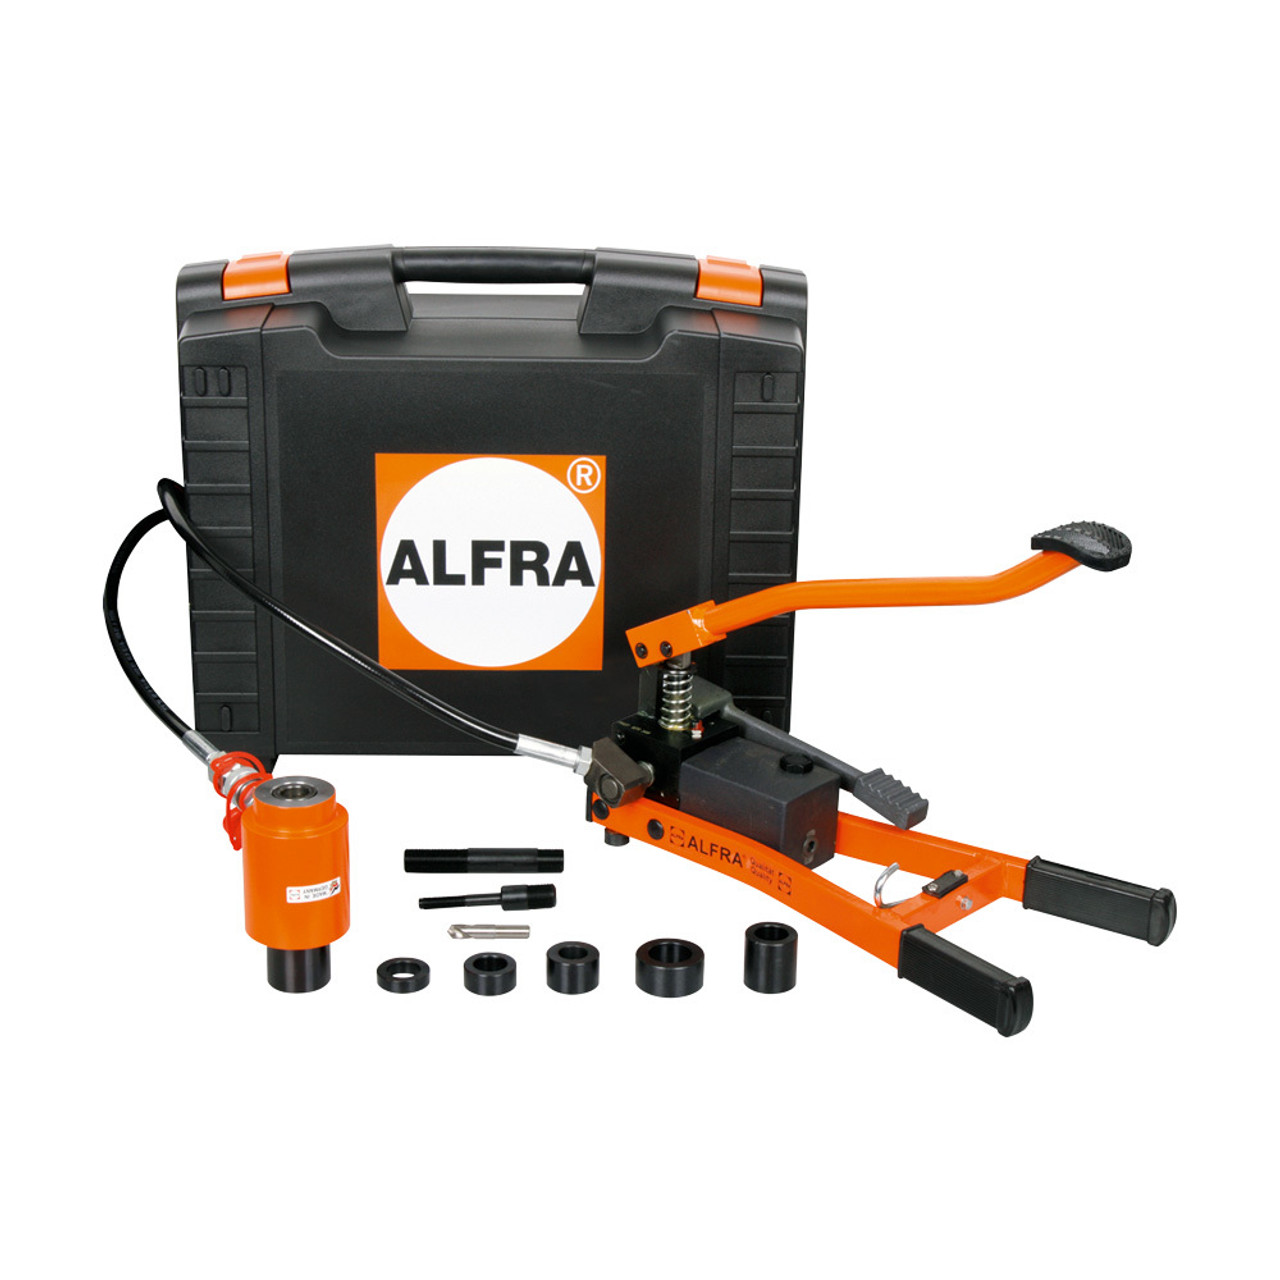 Alfra AEP-1 Foot Actuated Hydraulic Punching Tool Kit